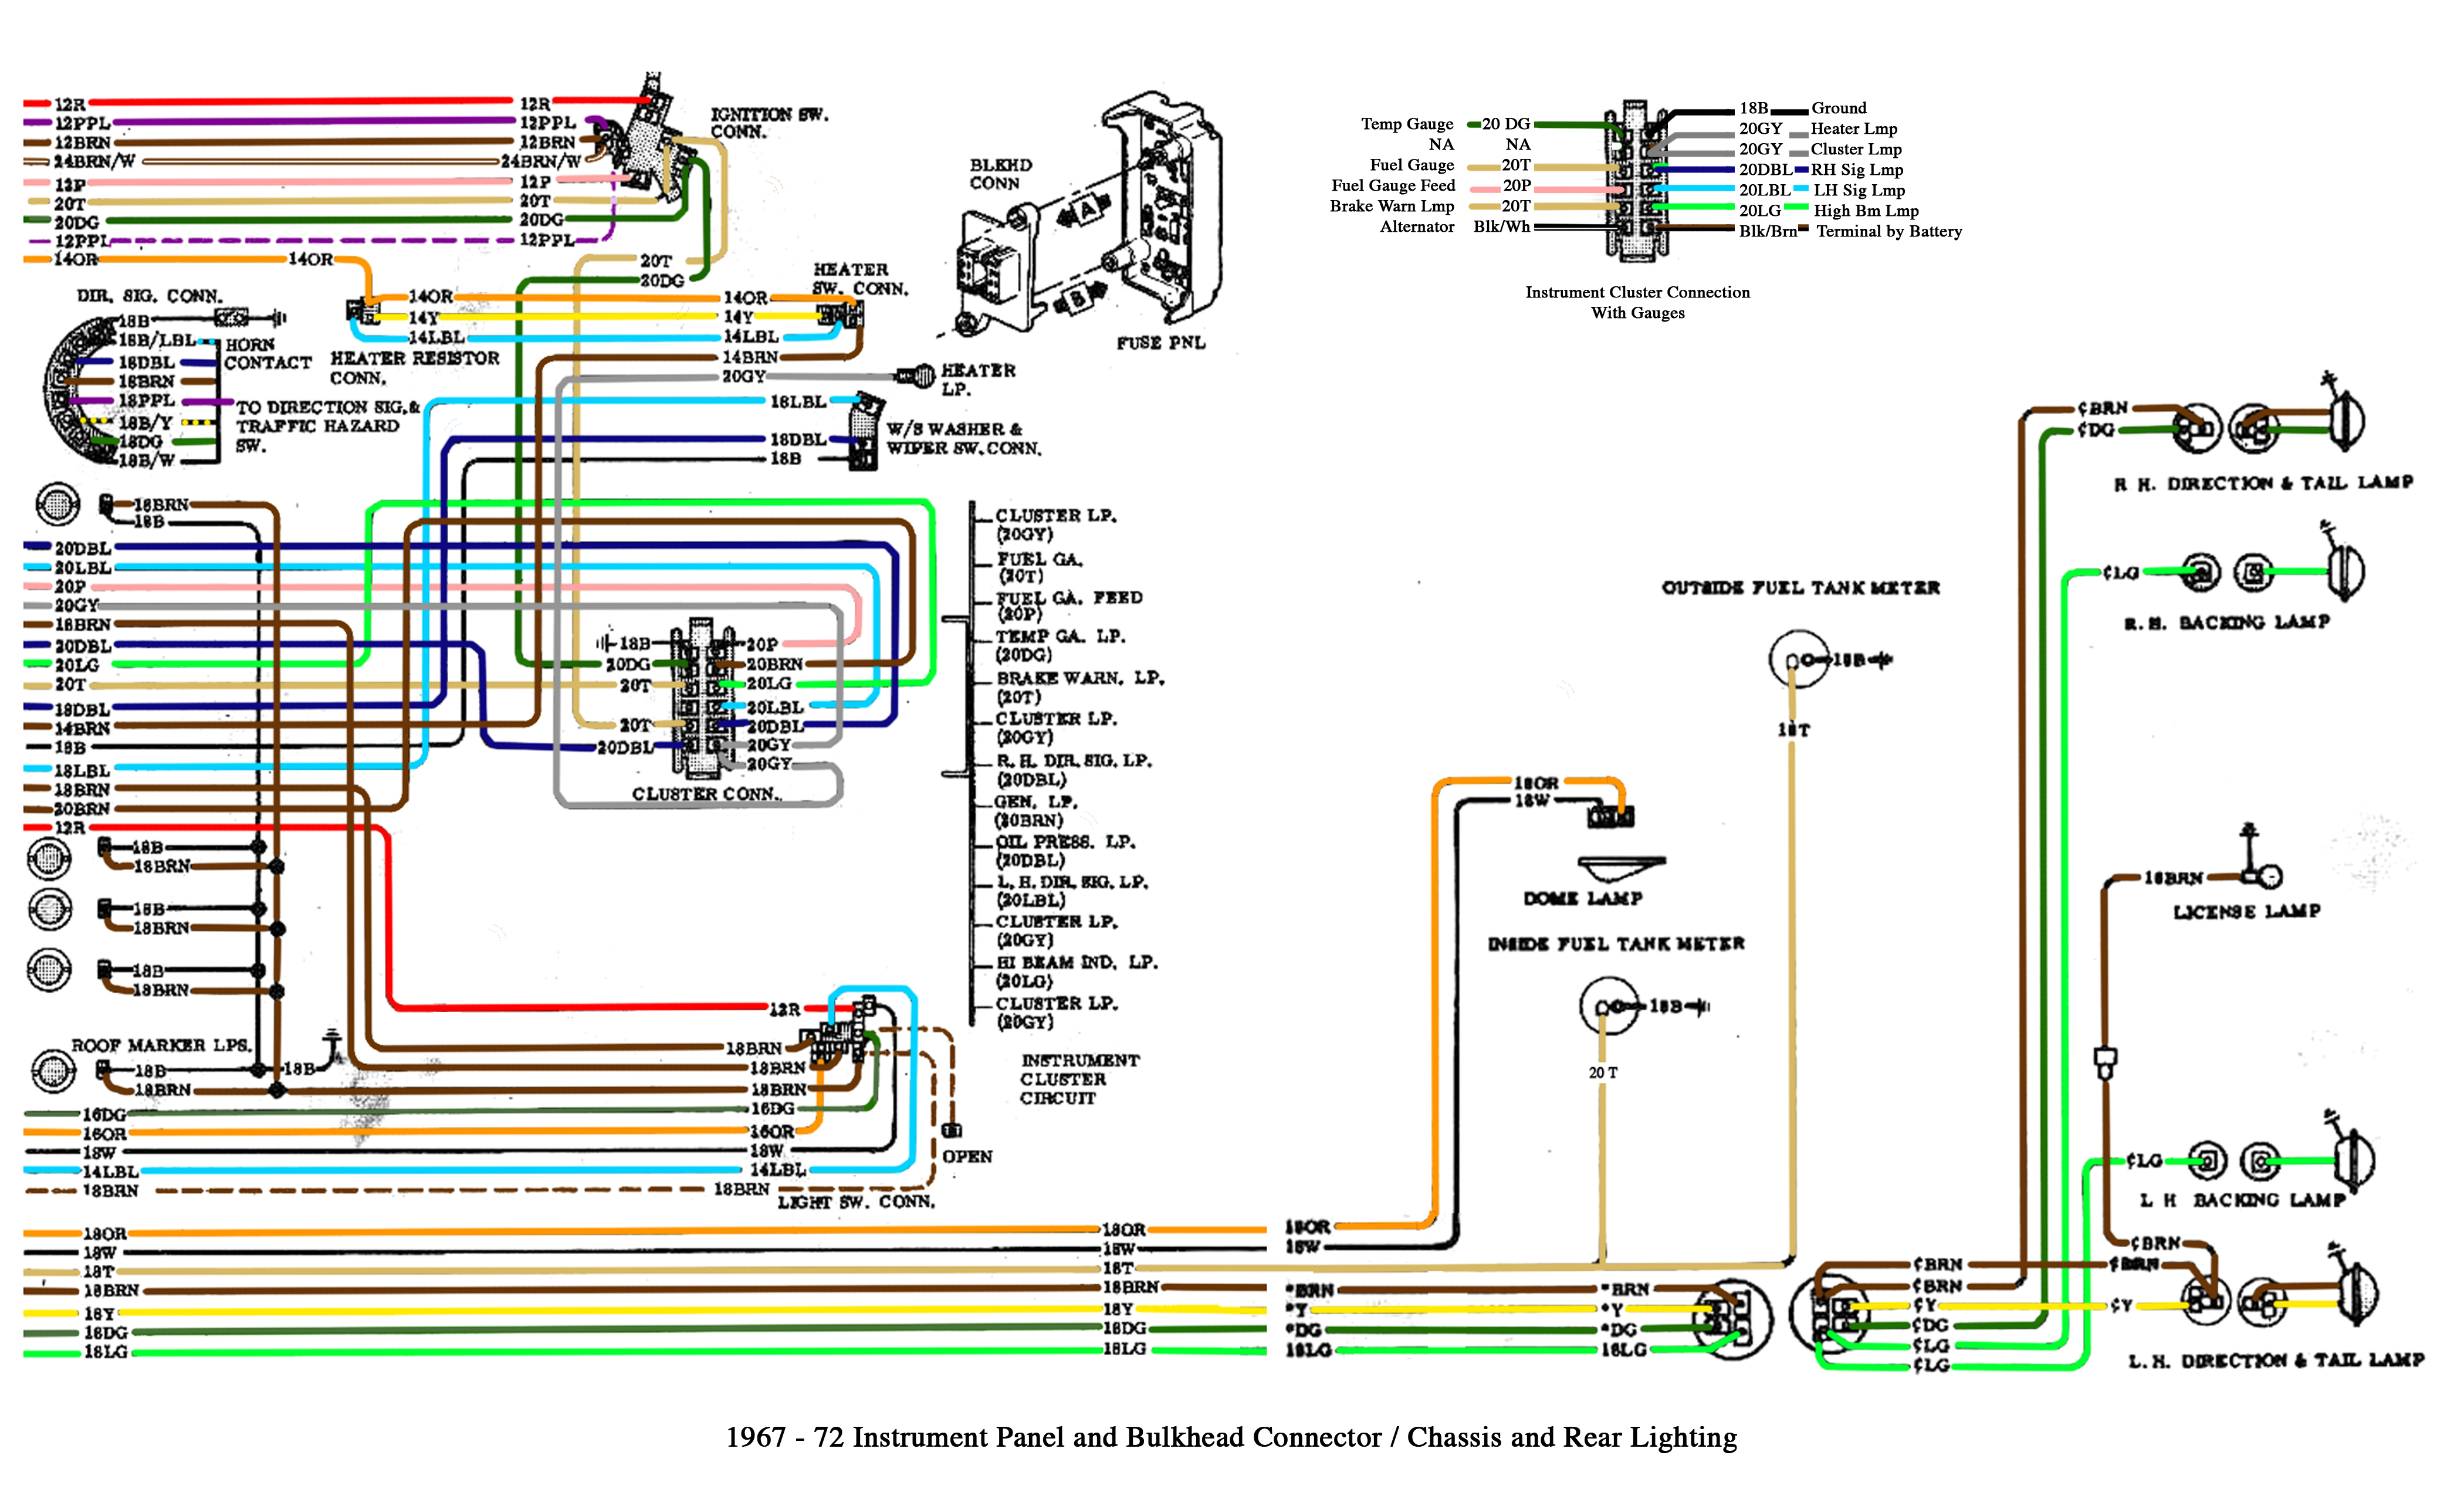 1972 Chevy Truck Wiring Diagram - Wiring Diagrams Hubs - 1972 Chevy Truck Wiring Diagram